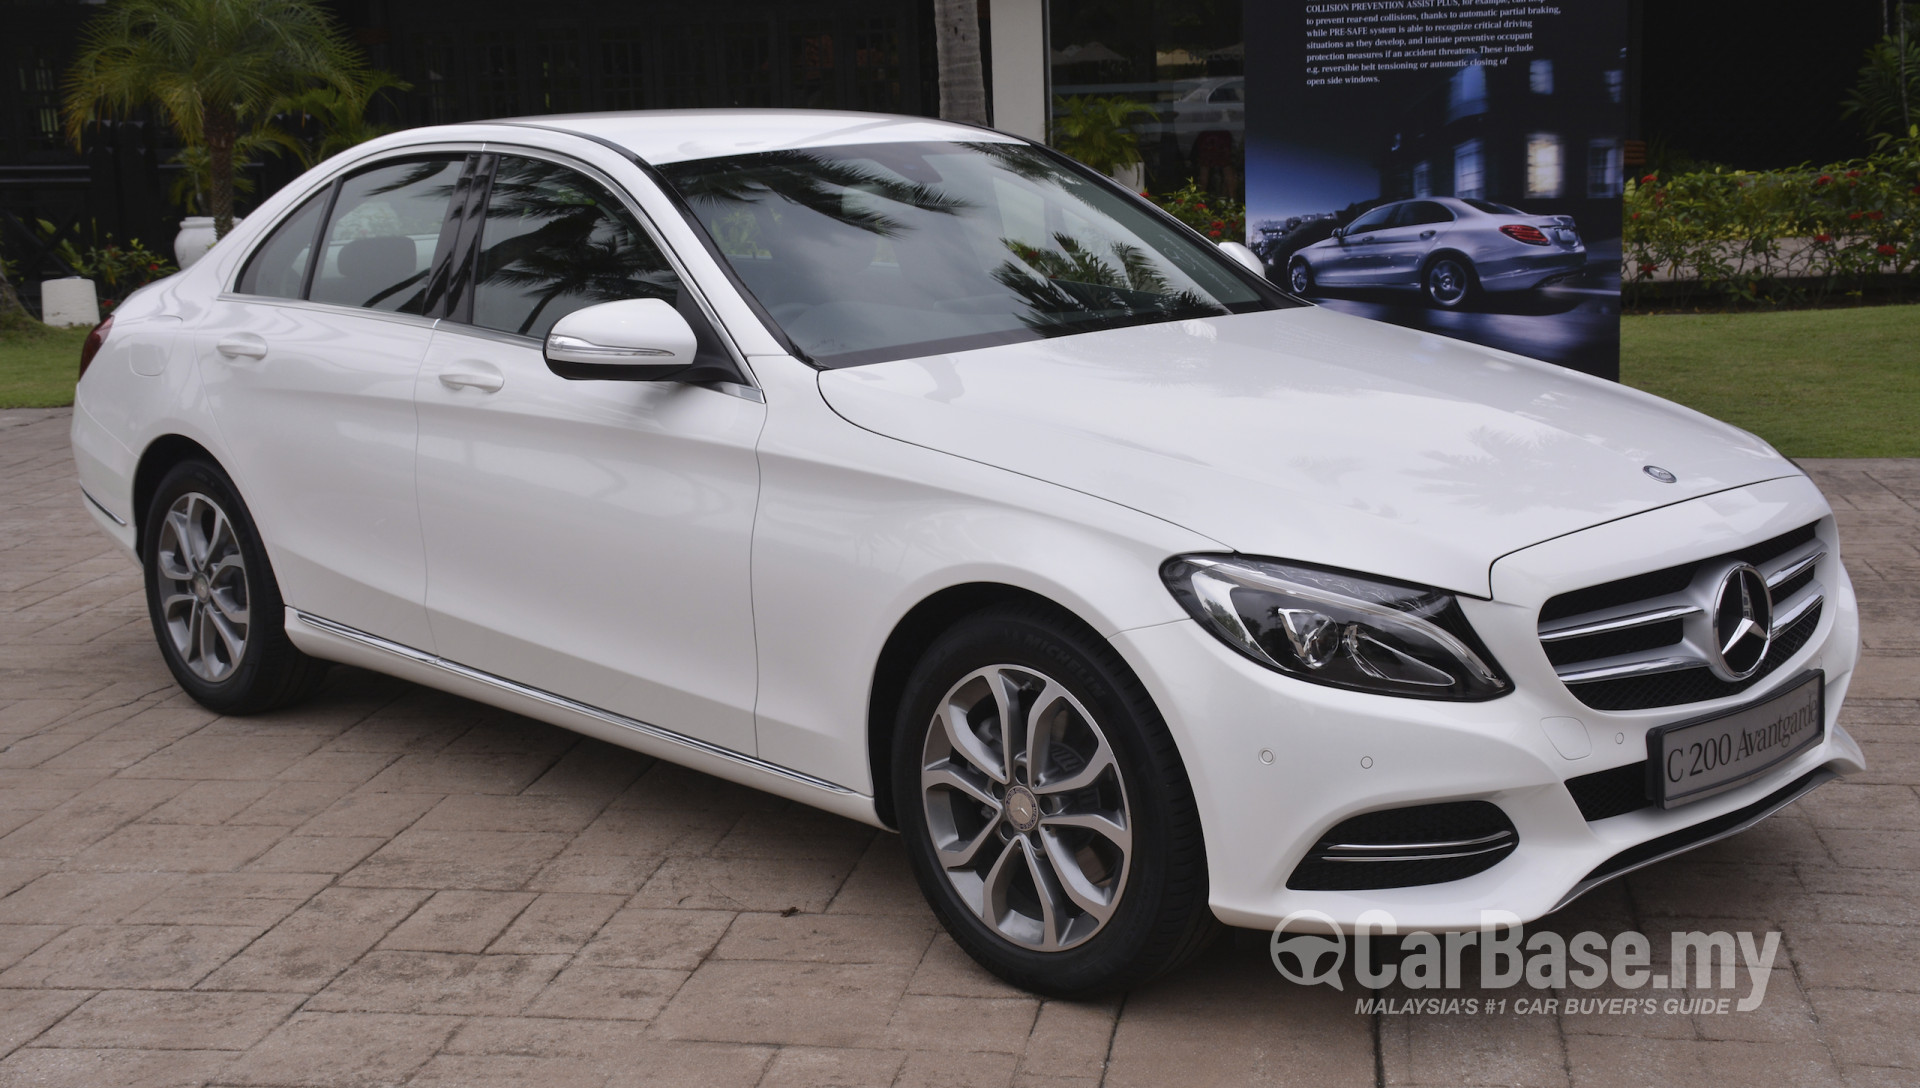 Mercedes benz c class w205 2014 exterior image 15887 in for Mercedes benz 2014 c class price